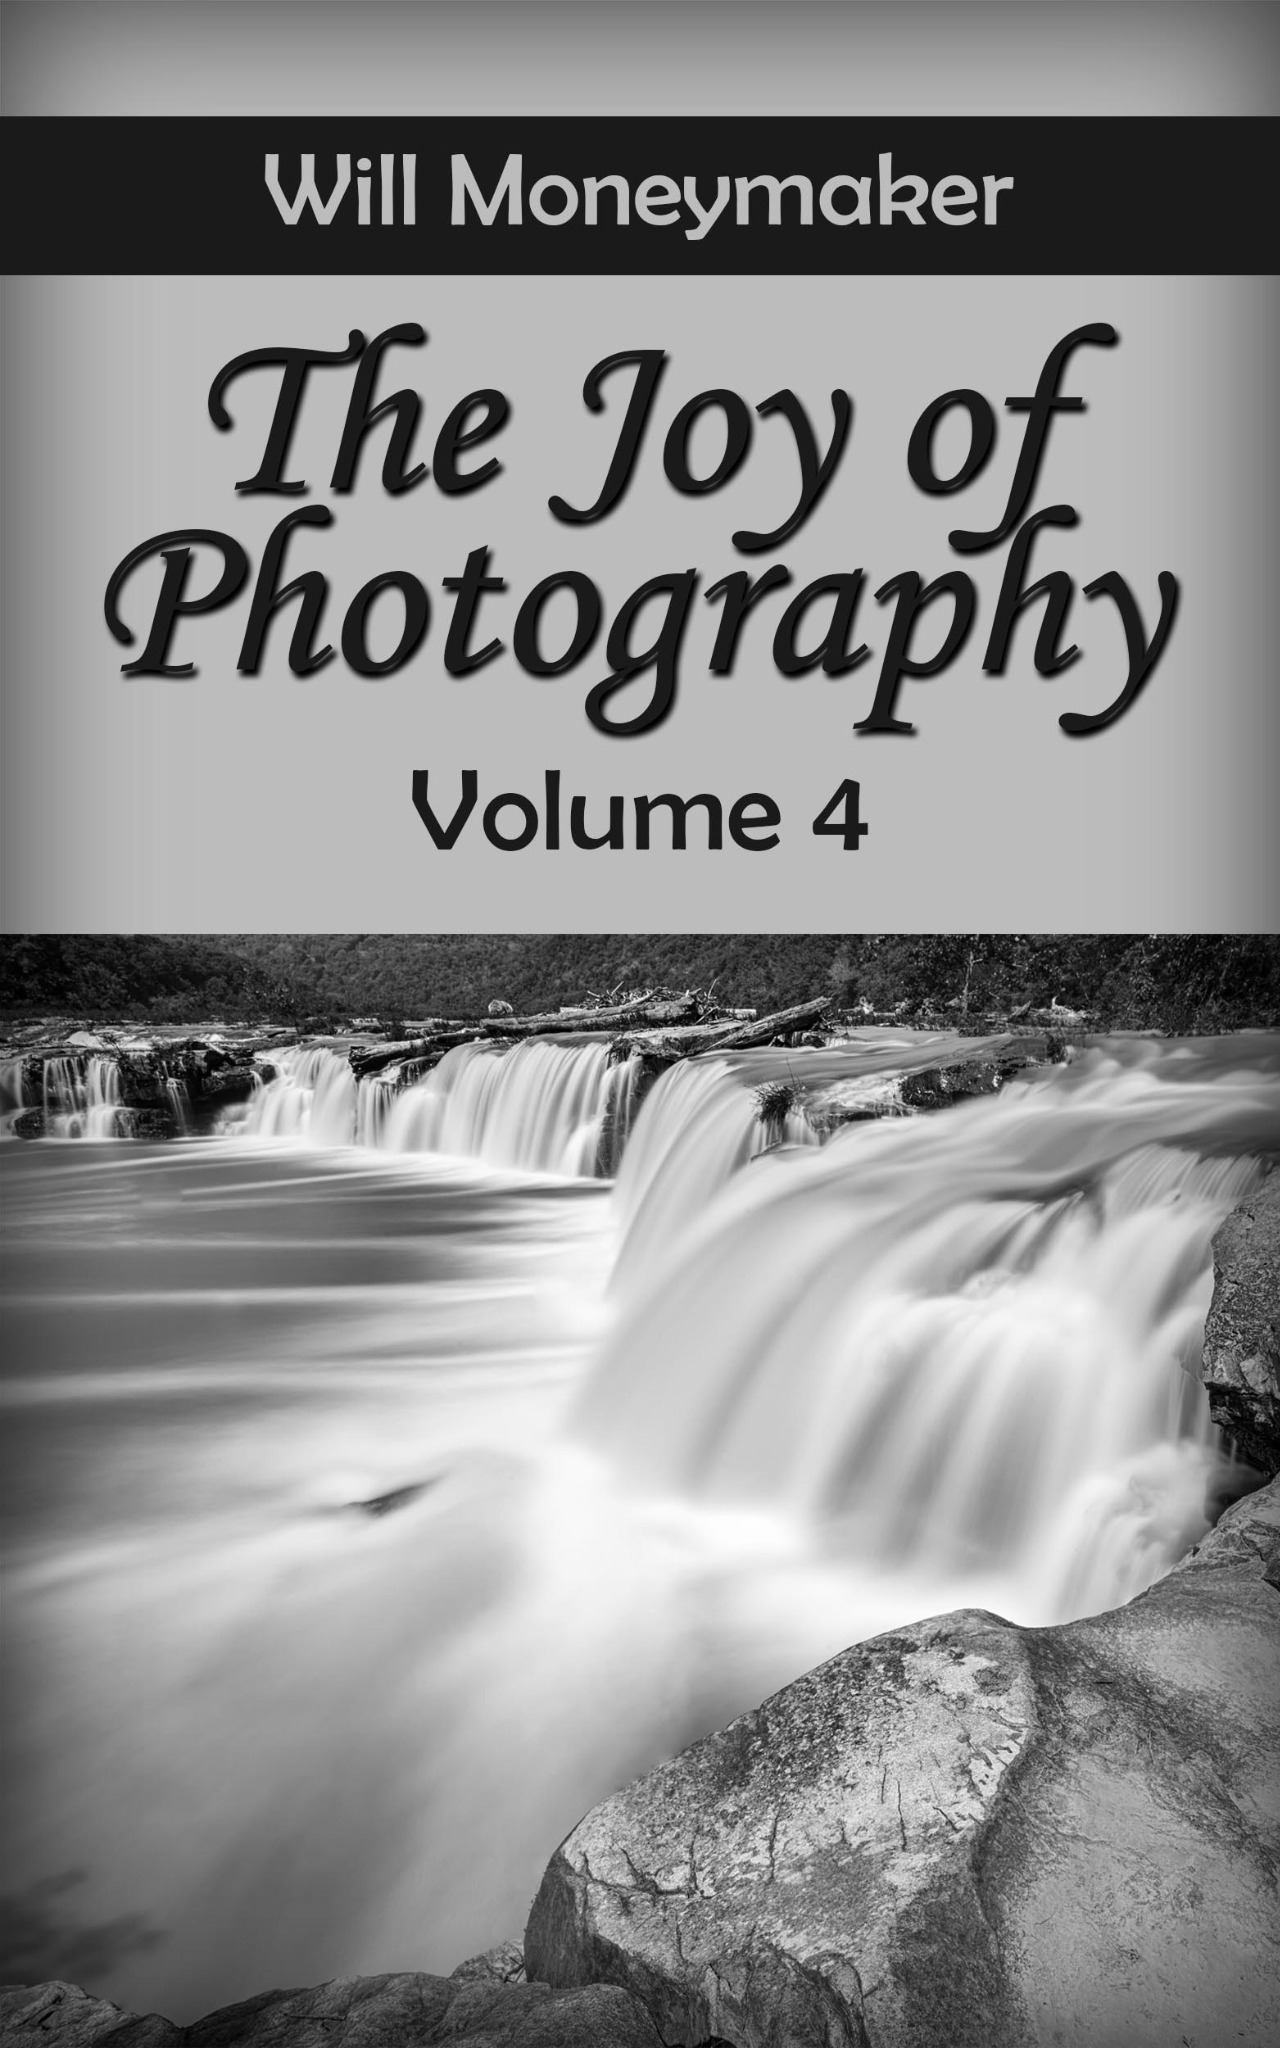 The Joy of Photography #4